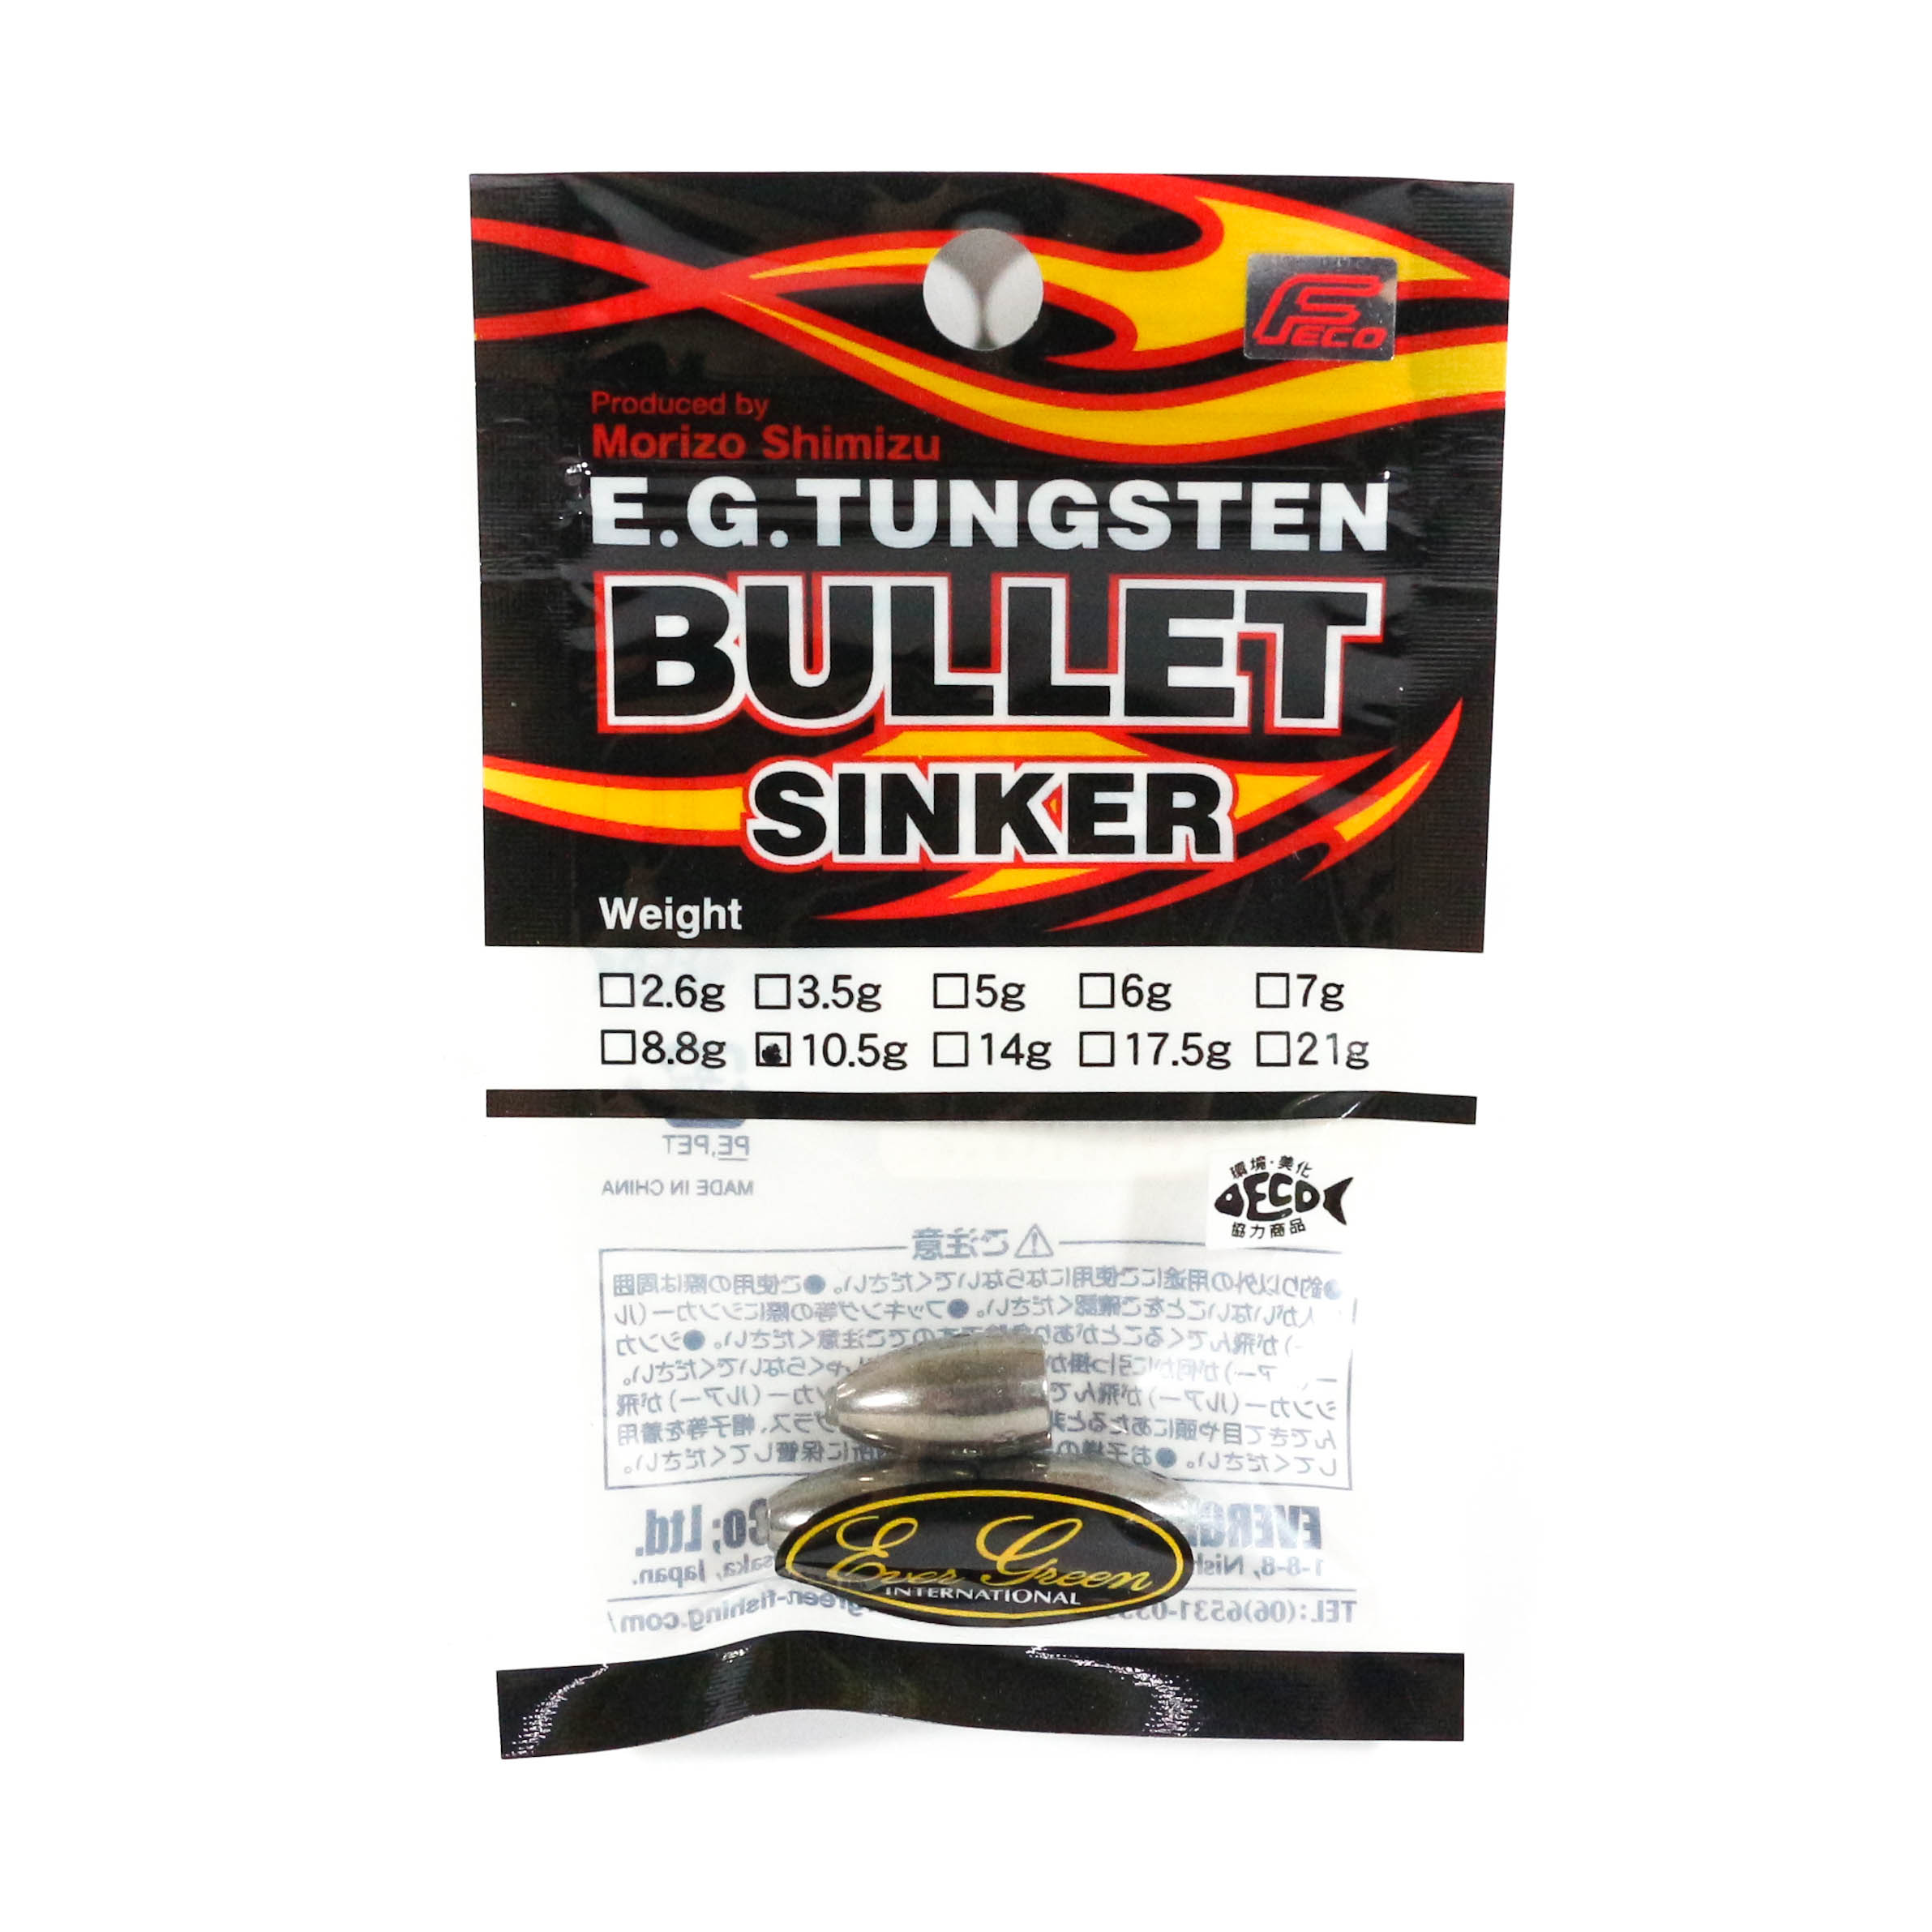 Evergreen Tungsten Bullet Sinker 3/8 oz (10.5 Grams) (1842)